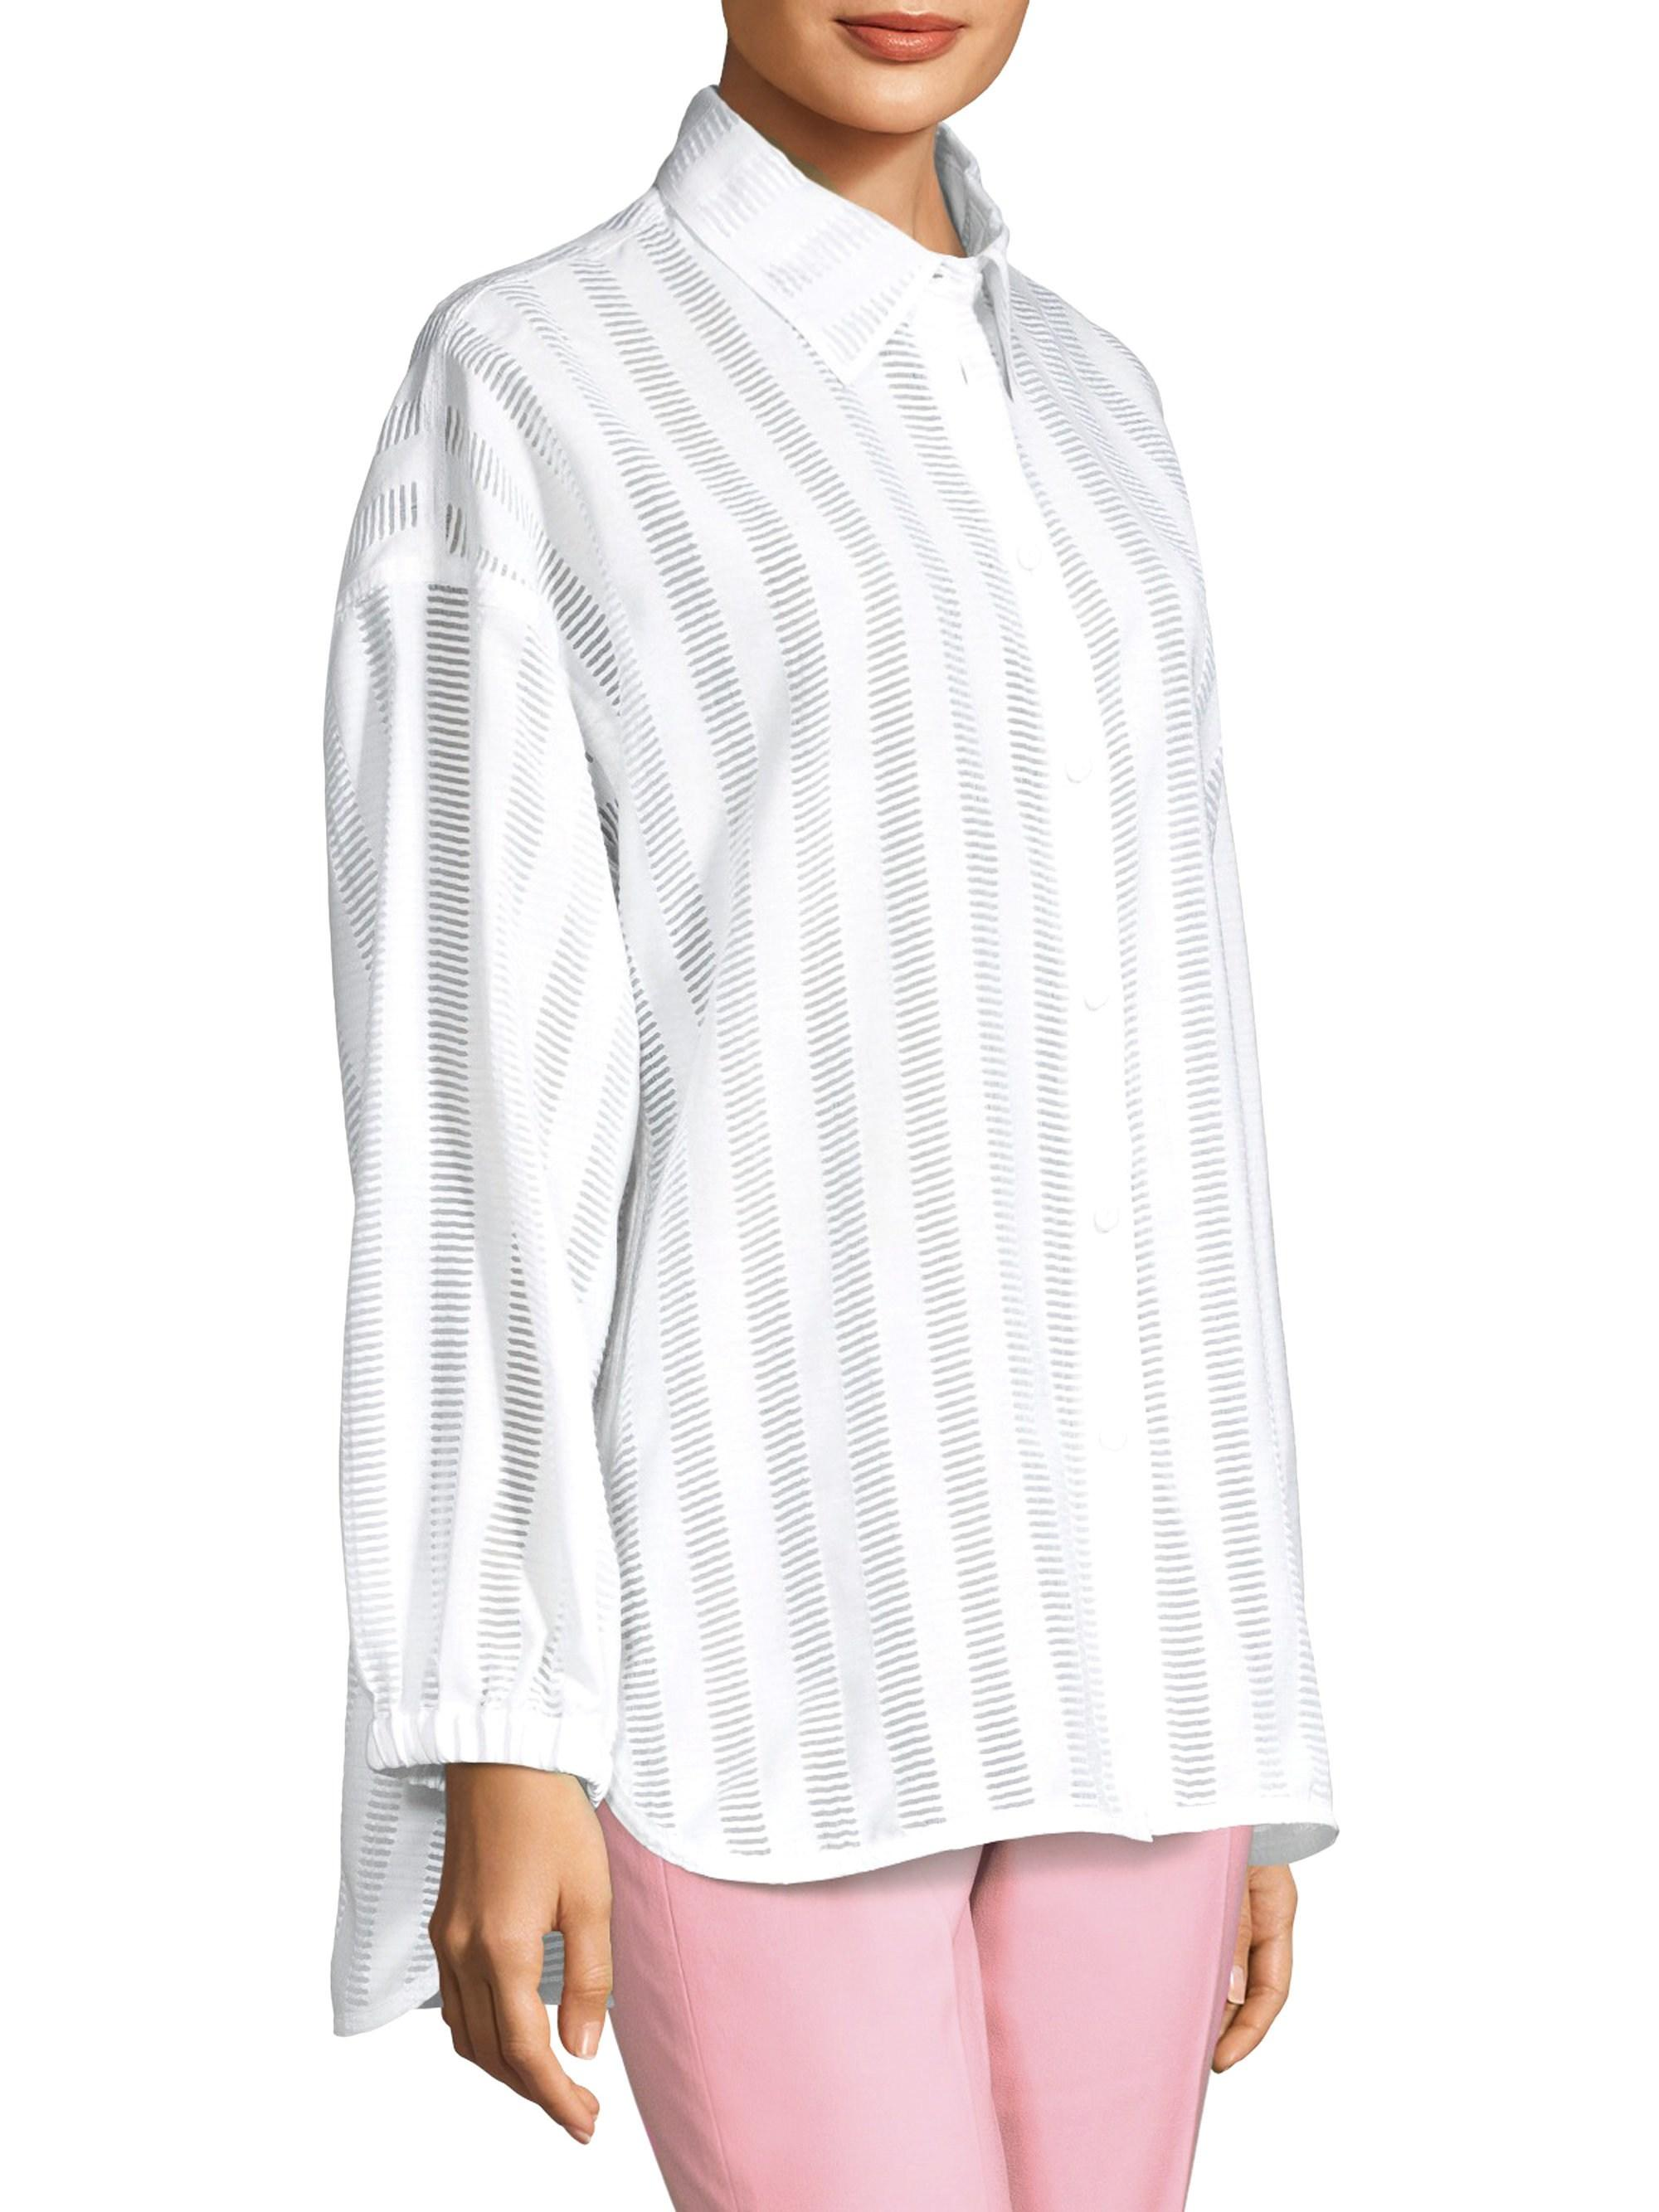 6a1ad2a3621 Lyst - Piazza Sempione Women s Novelty Shirt - White - Size 42 (6) in White  - Save 38%